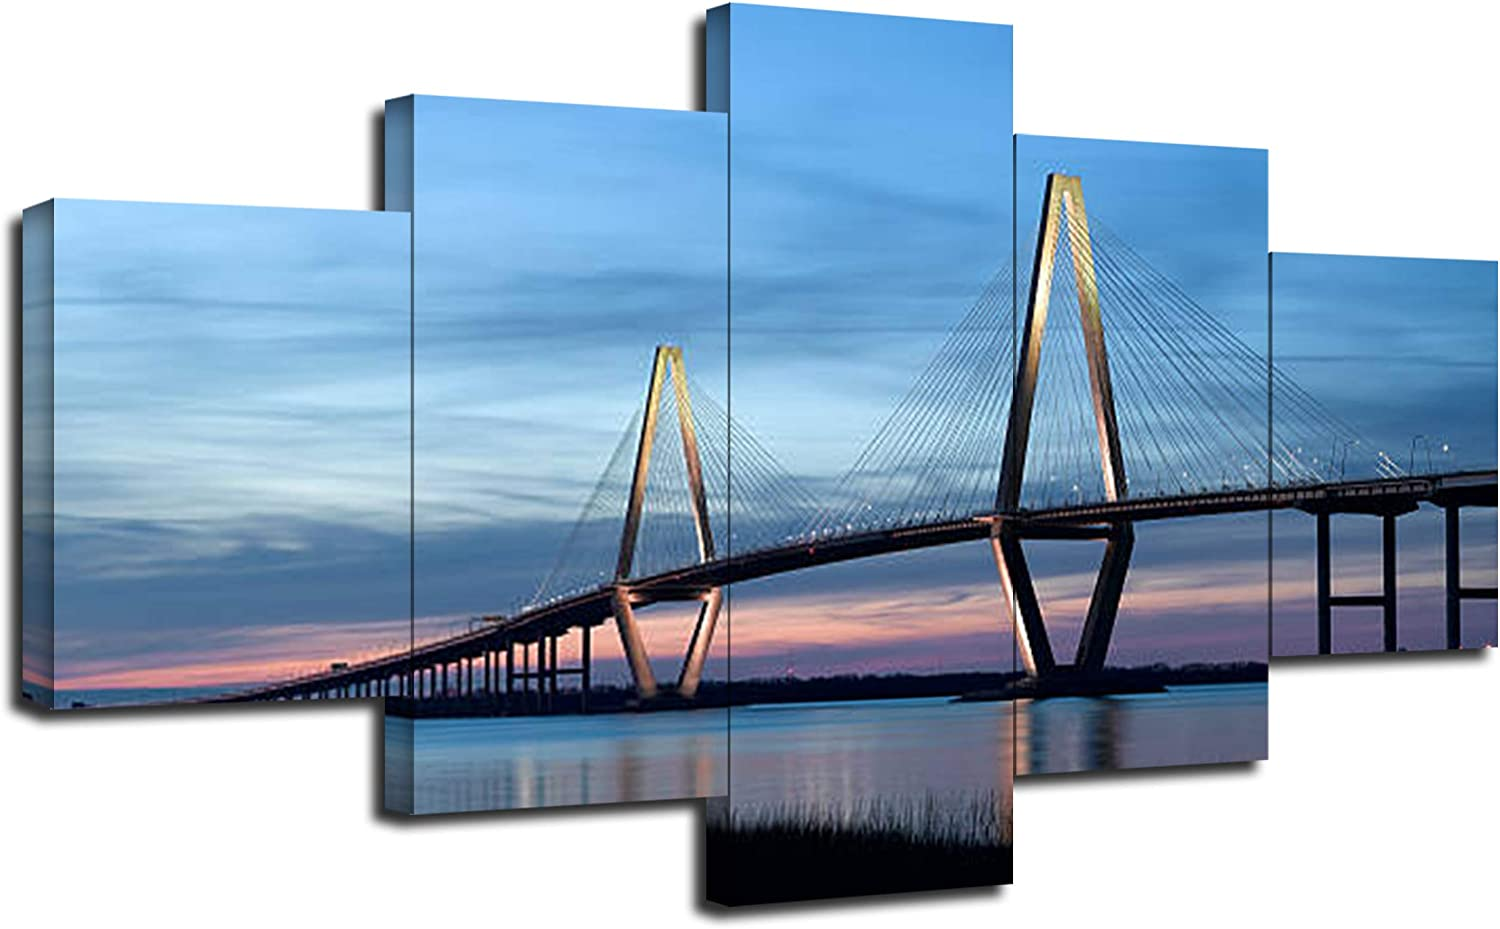 Ravenel Bridge Wall Art Canvas Prints Cooper River Bridge in Charleston SC Wall Decor Pictures 5 Piece Posters American Landmarks Paintings Framed Ready to Hang(60''Wx32''H)